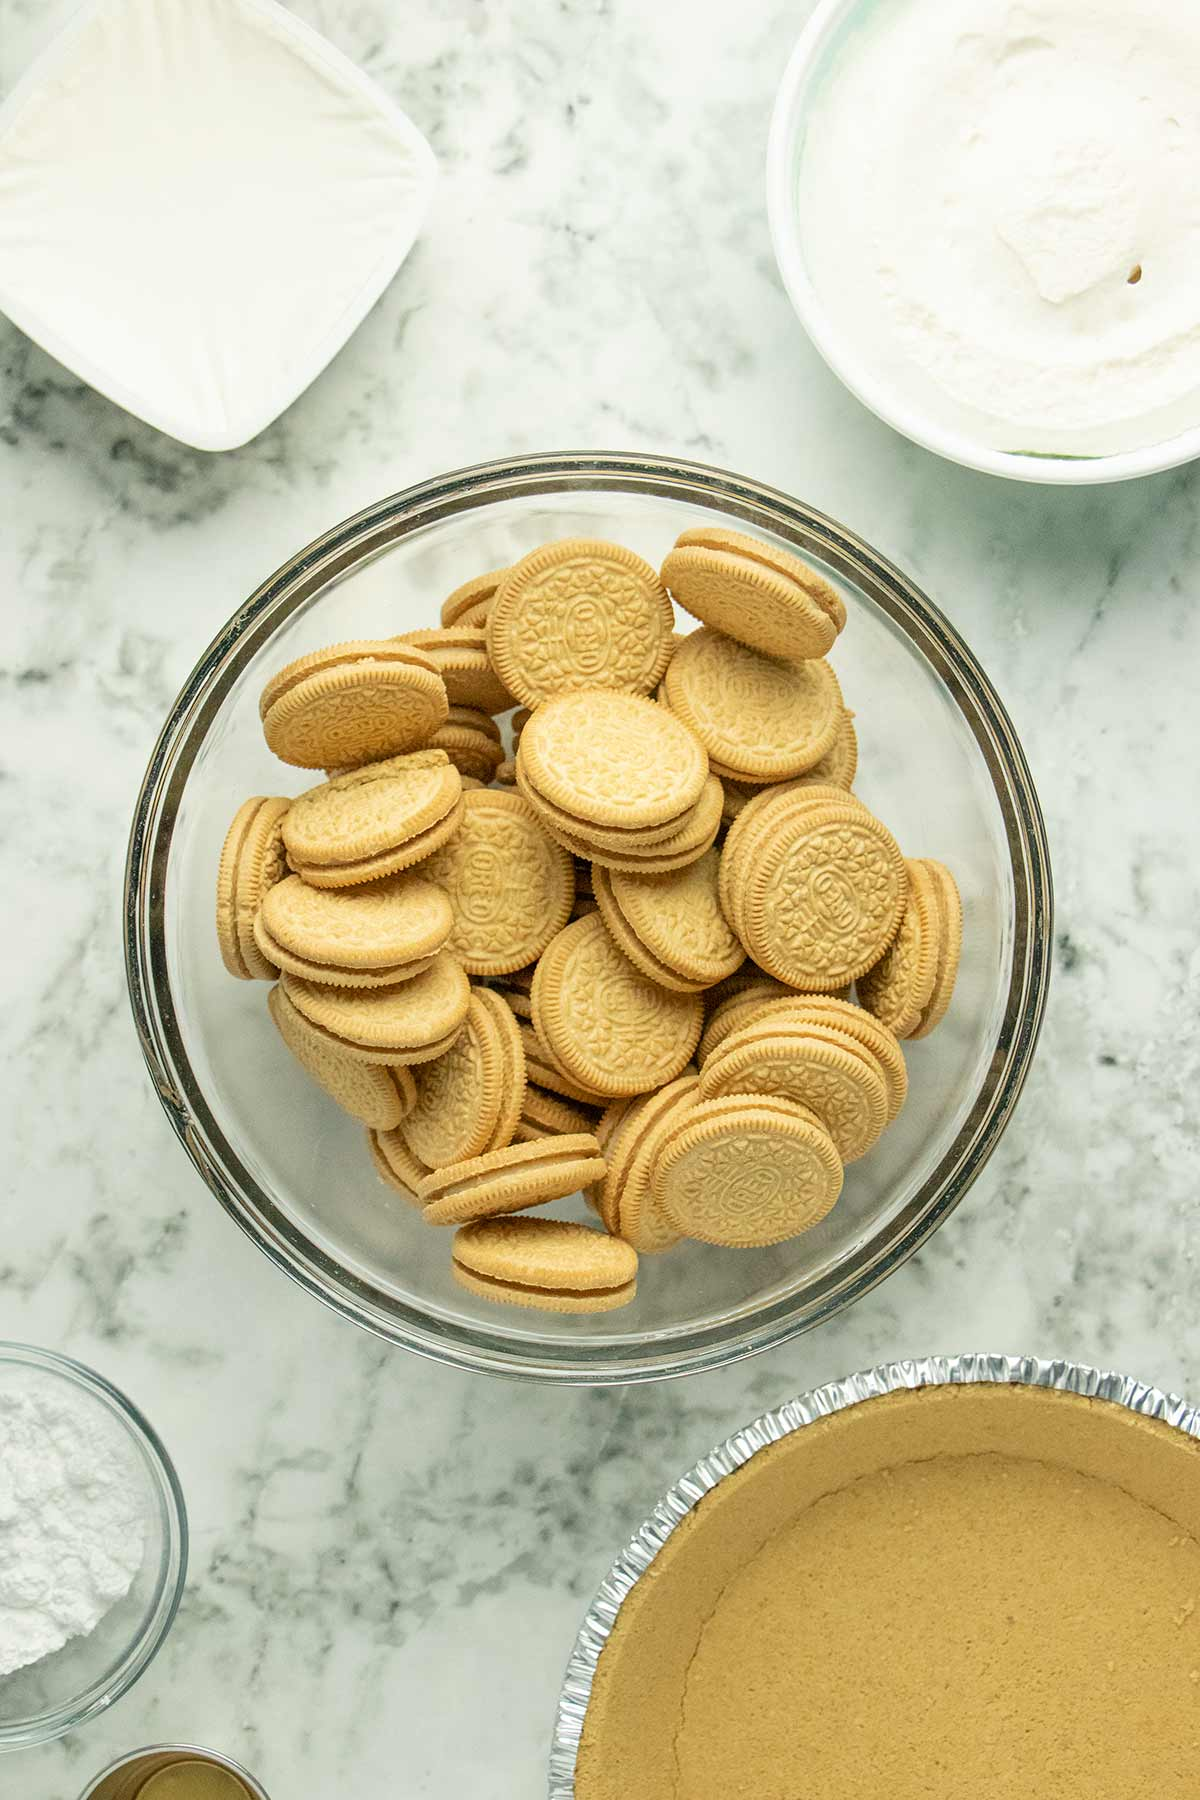 bowl of Golden Oreos on a marble table surrounded by the other pie ingredients